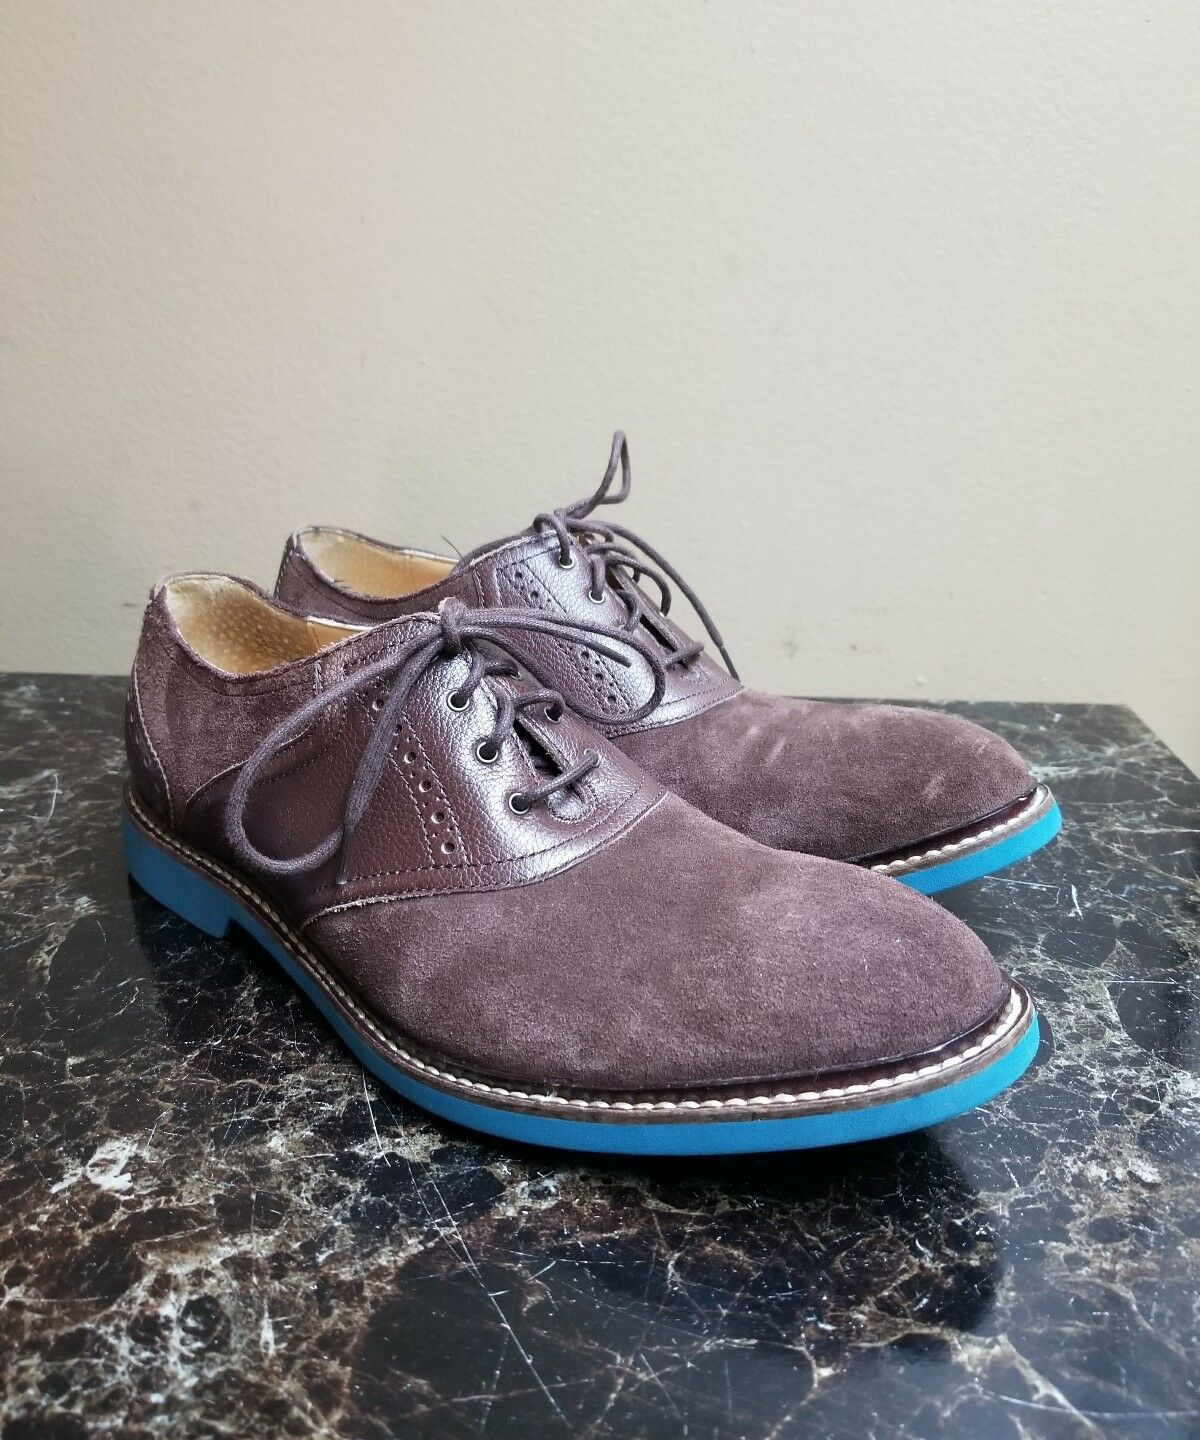 Cole Haan Saddle Oxford 2 Marroneee blu Suede  Dimensione 9 M